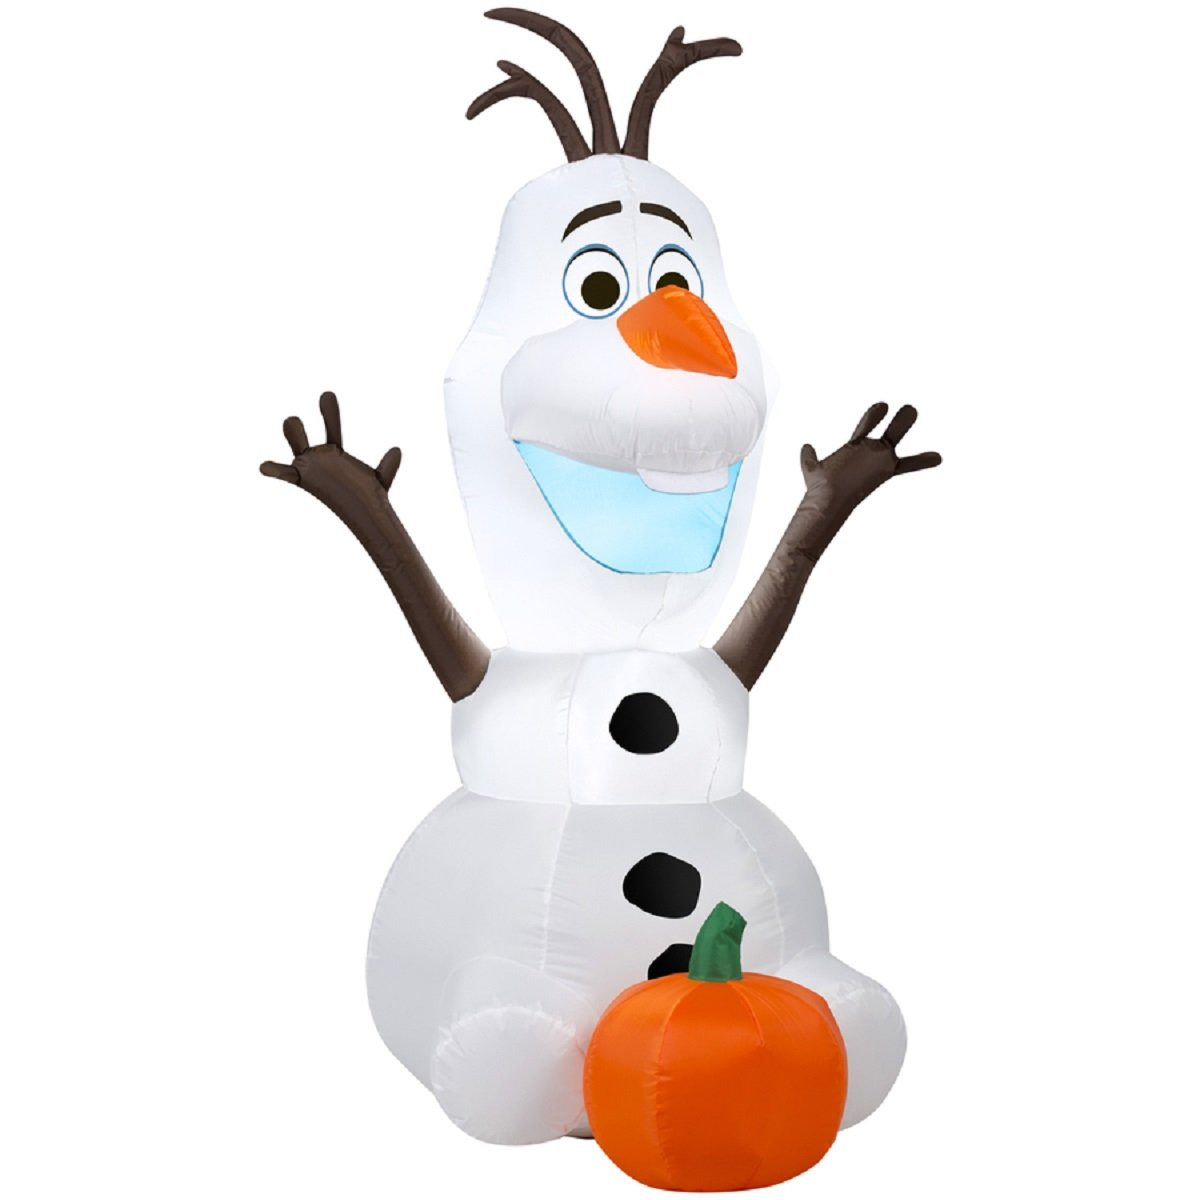 HALLOWEEN INFLATABLE DISNEY FROZEN LED LIGHTED 3.5' OLAF WITH PUMPKIN OUTDOOR INDOOR GEMMY YARD PROP DECORATION